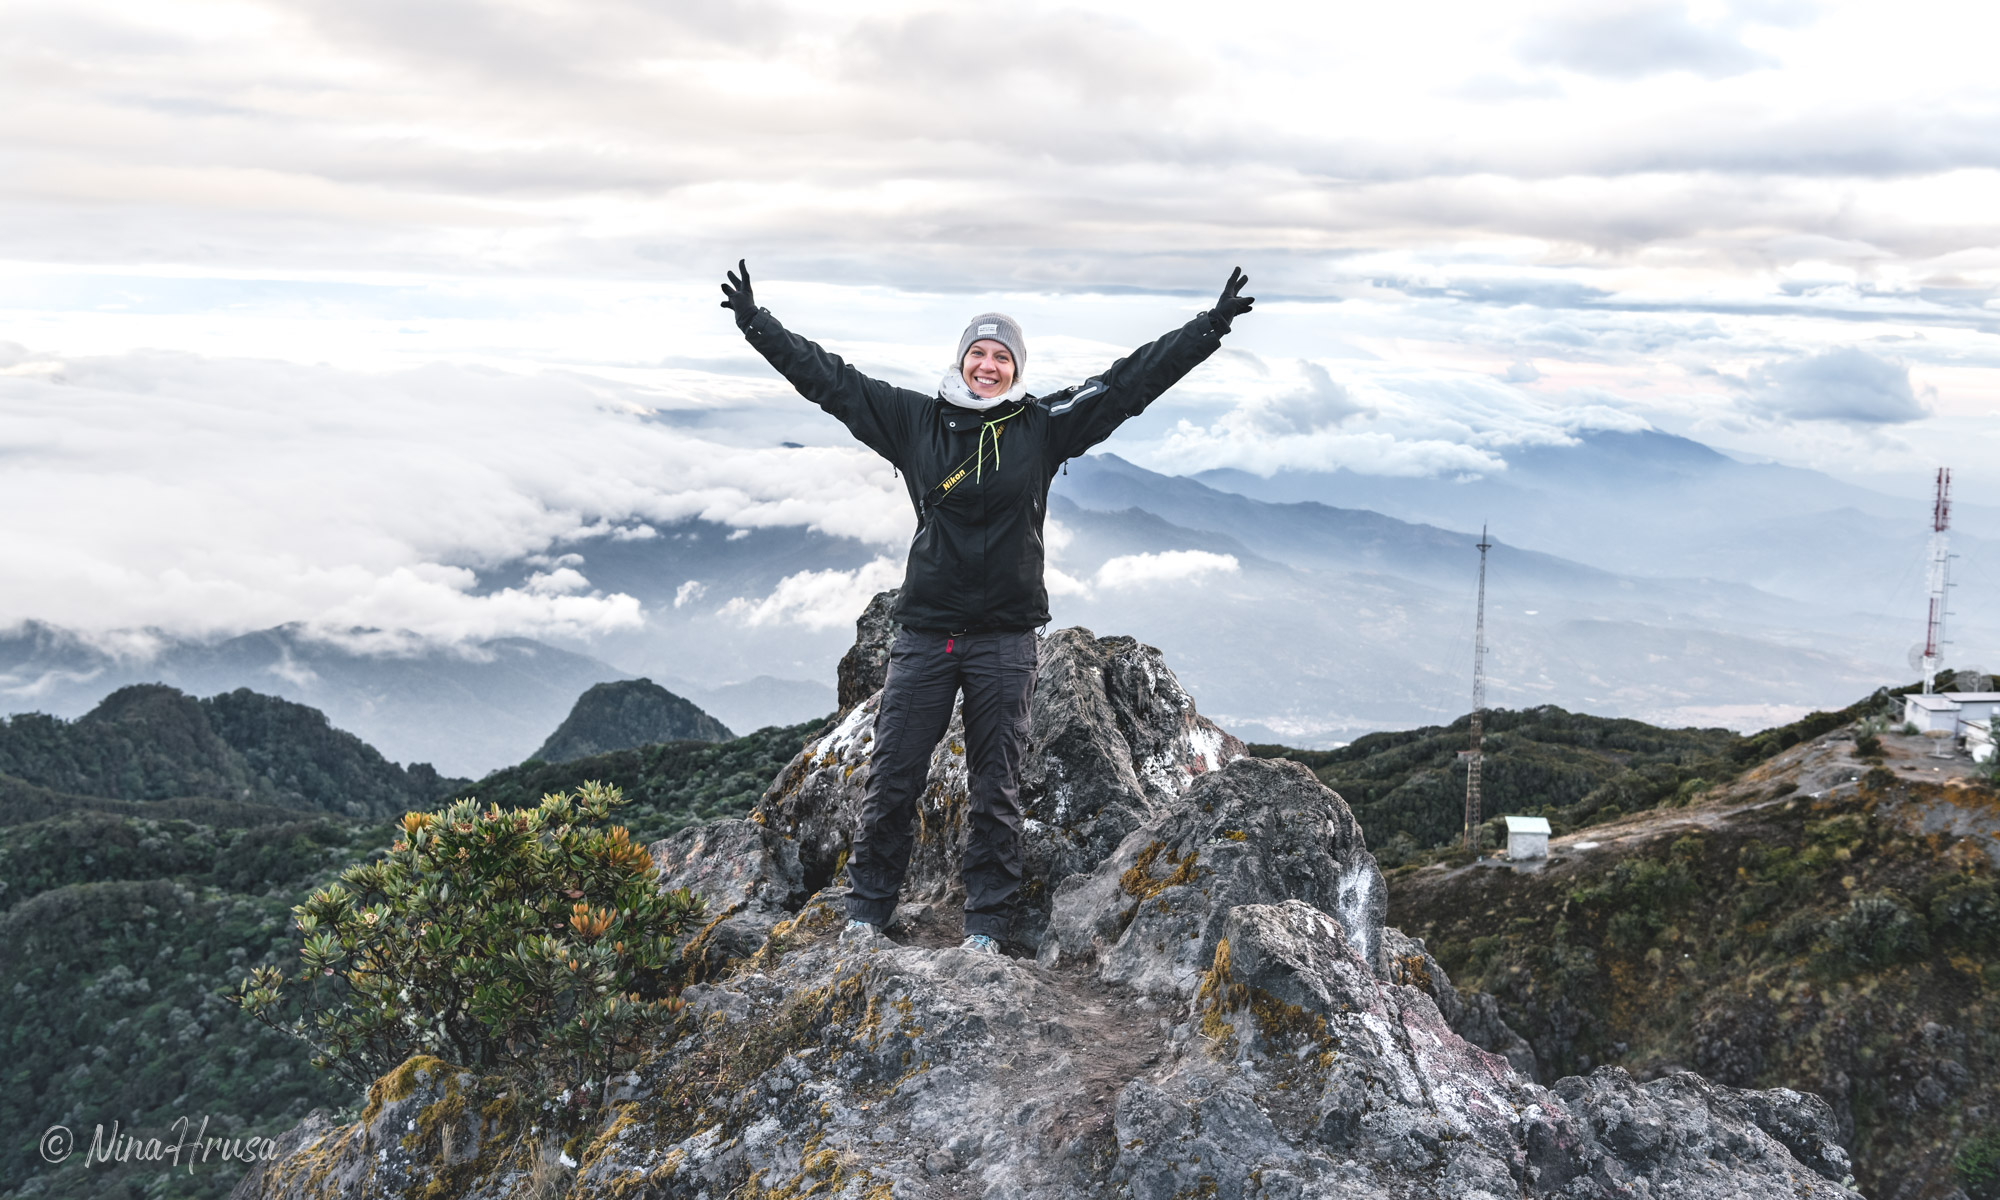 Nina Hrusa on top of Volcan Baru, Panama 2019